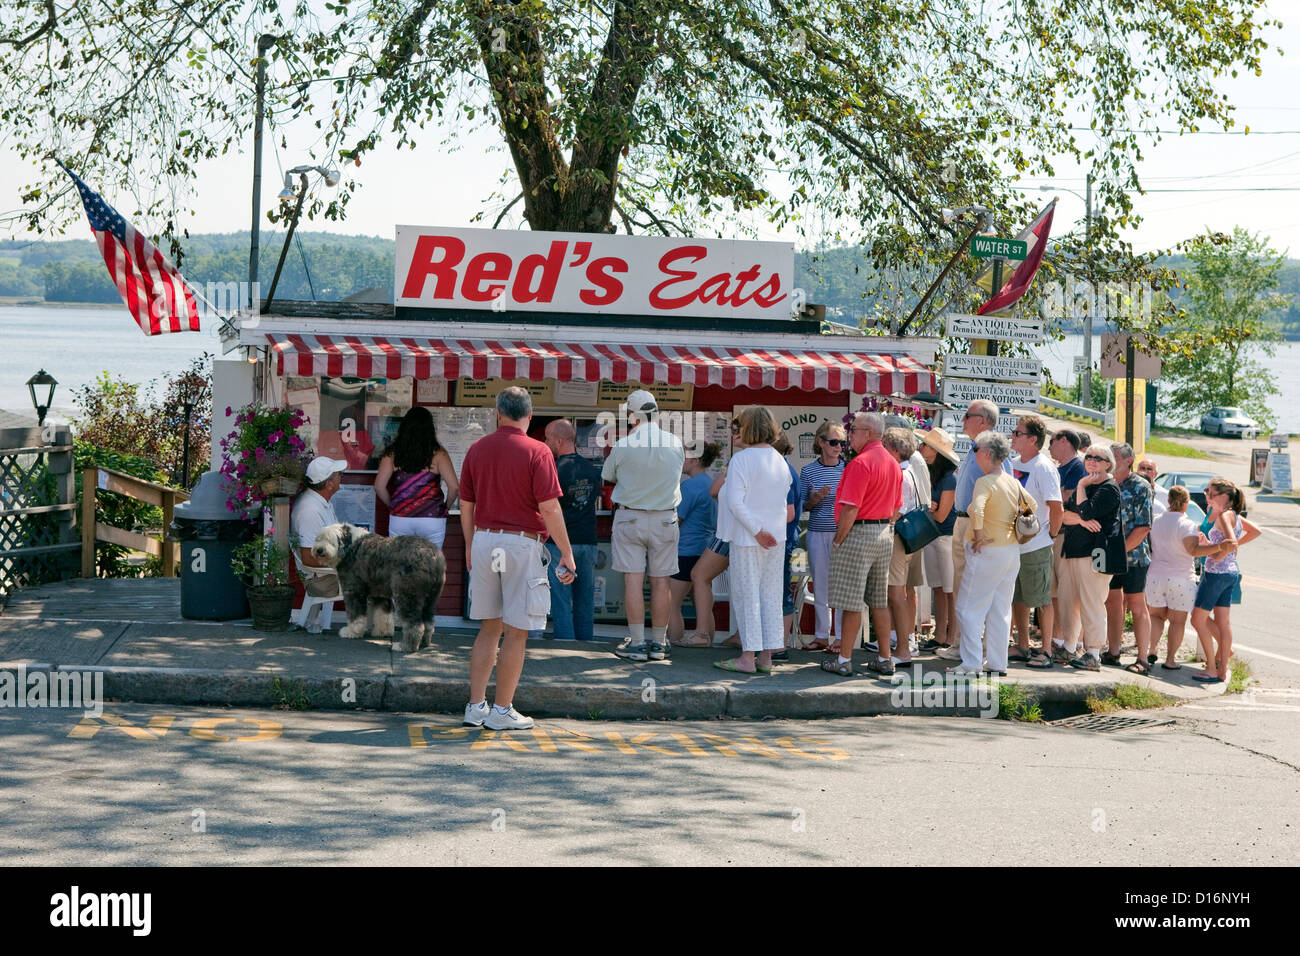 Red's Eats in Wiscasset, Maine Stock Photo: 52394709 - Alamy